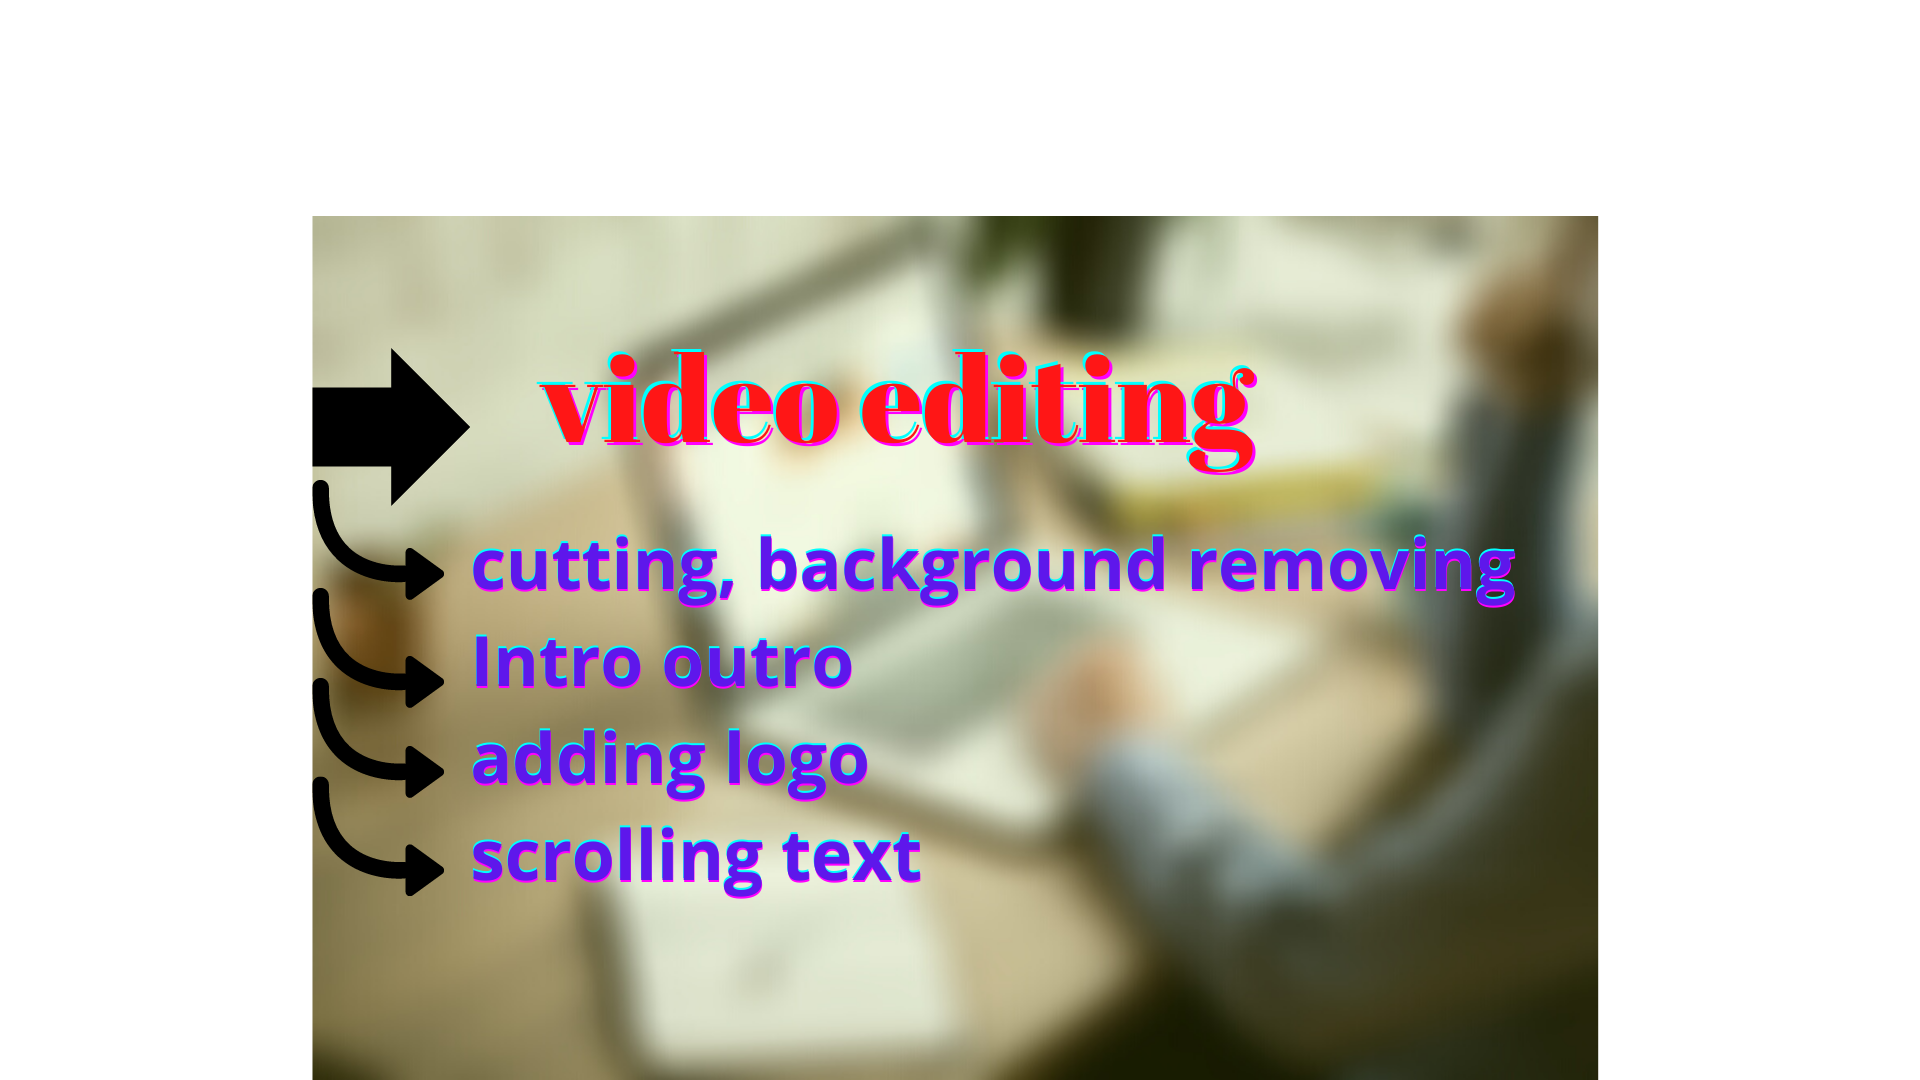 I will do video editing professionally with intro outro